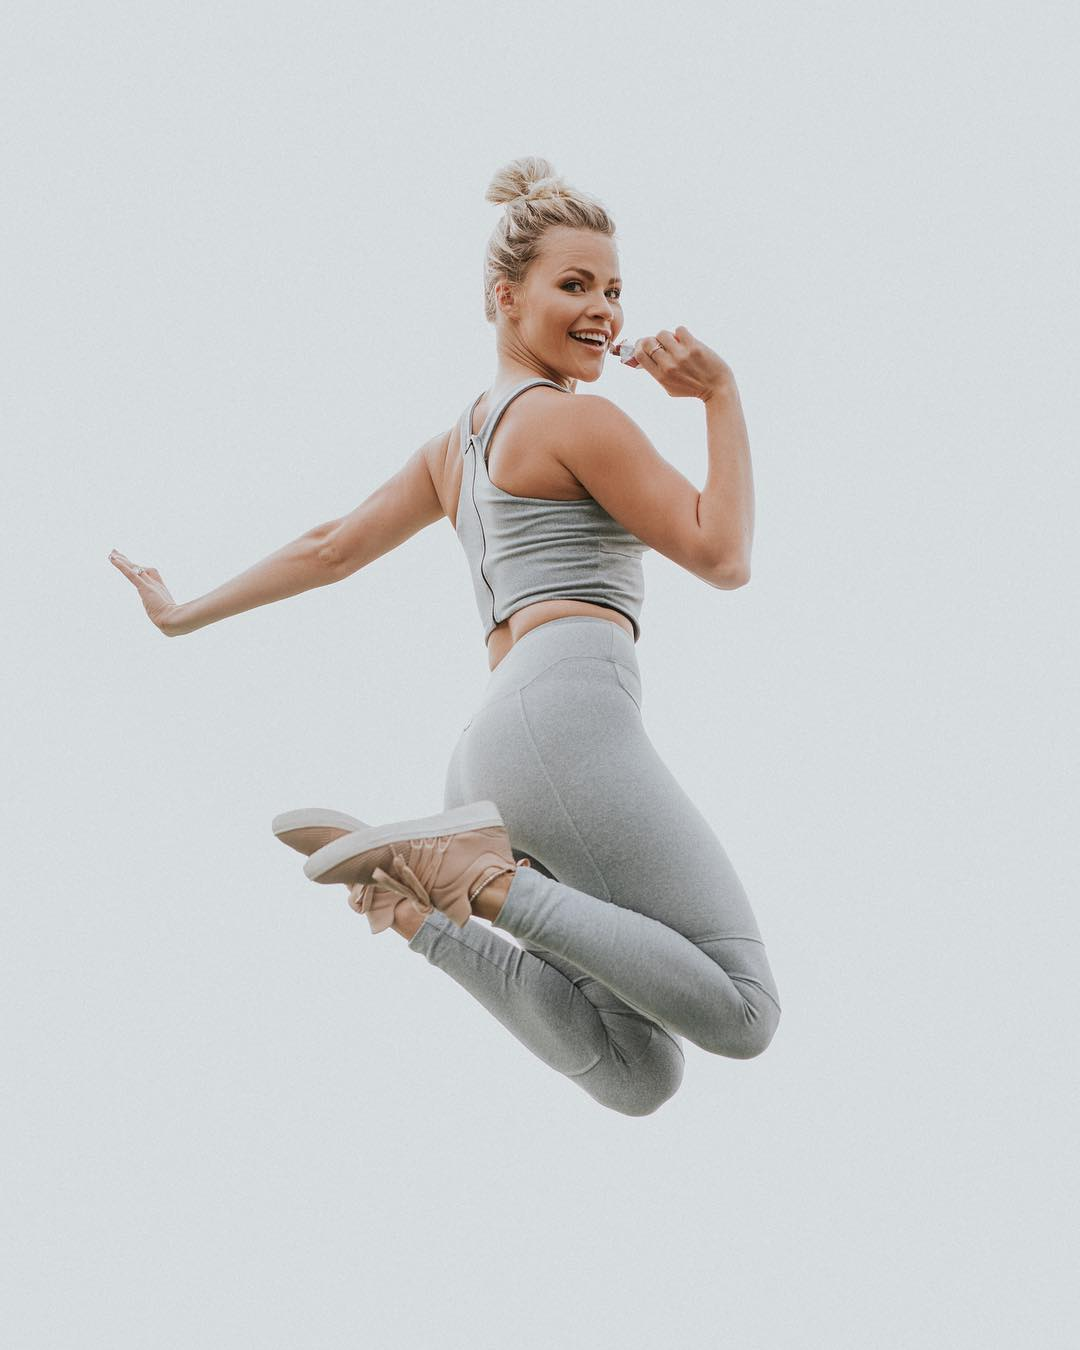 witney carson jumping